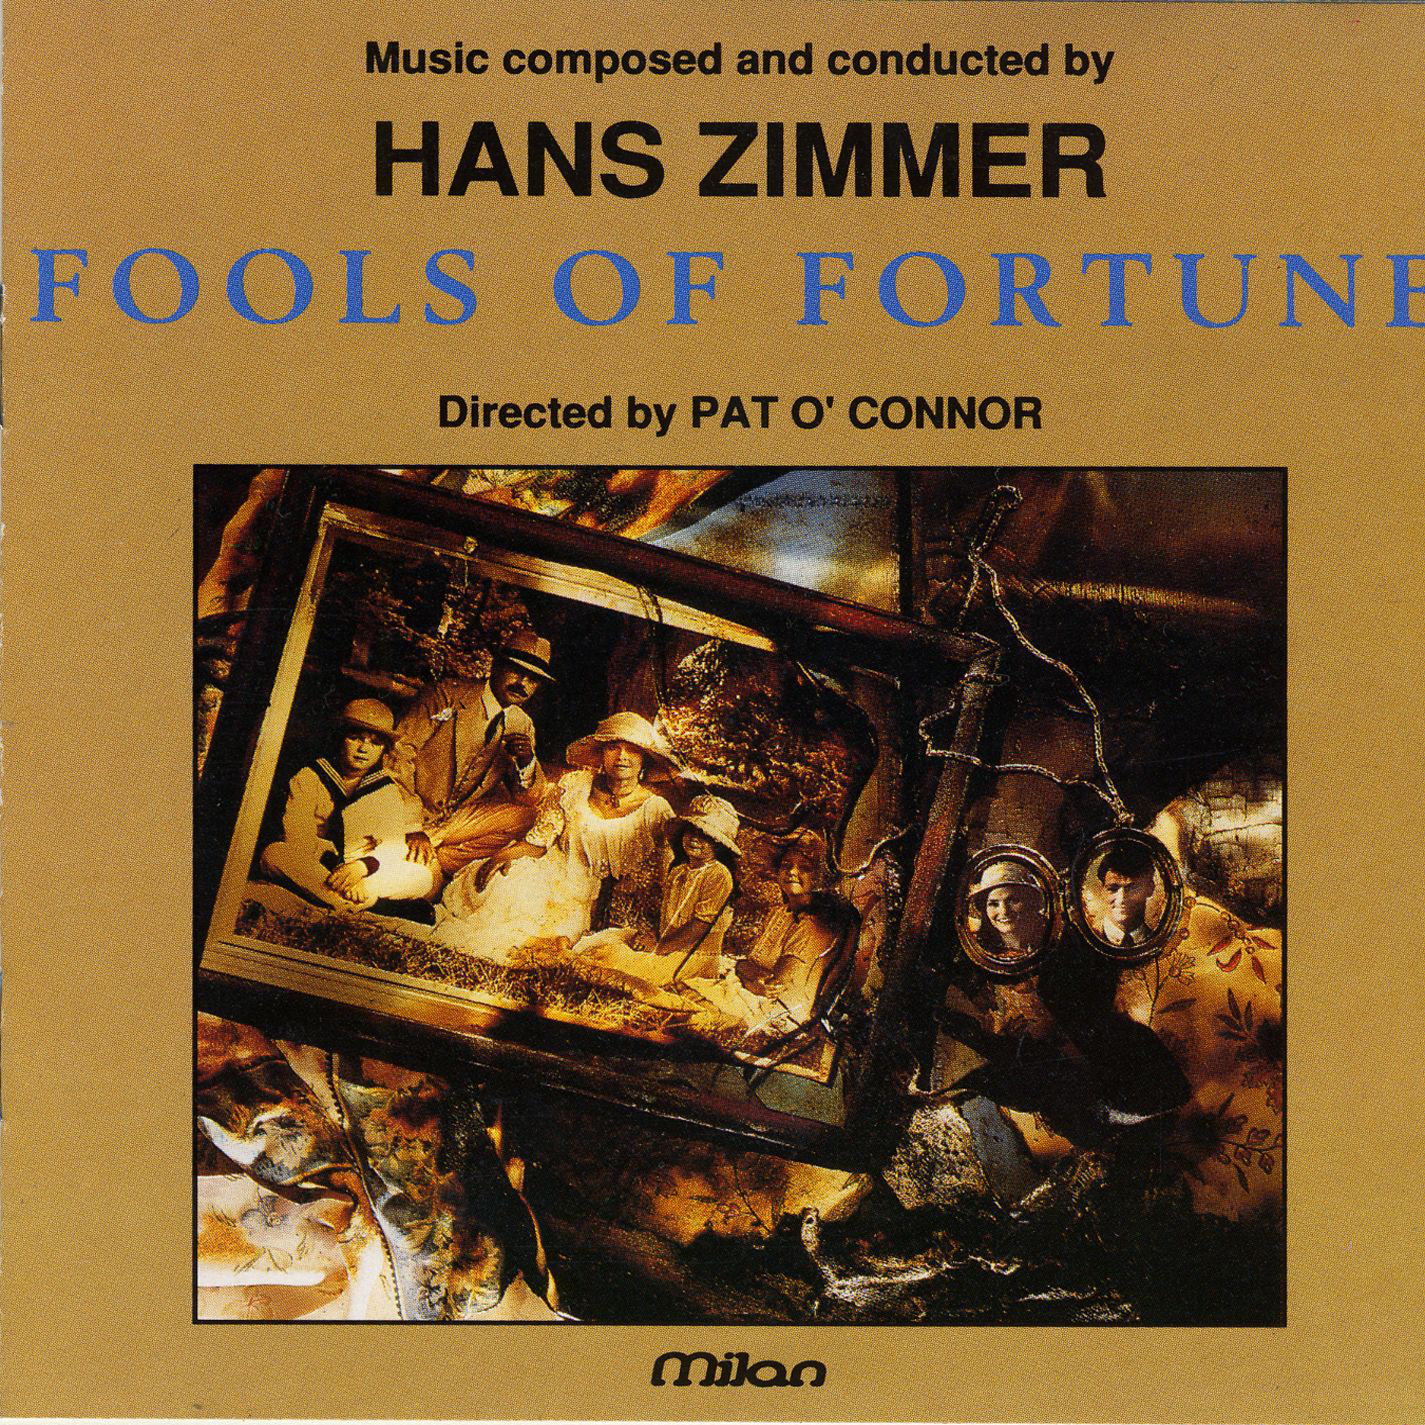 fools of fortune Welcome to the hans-zimmercom website biography, discography, news, mp3 extracts, interviews, videos, medias.